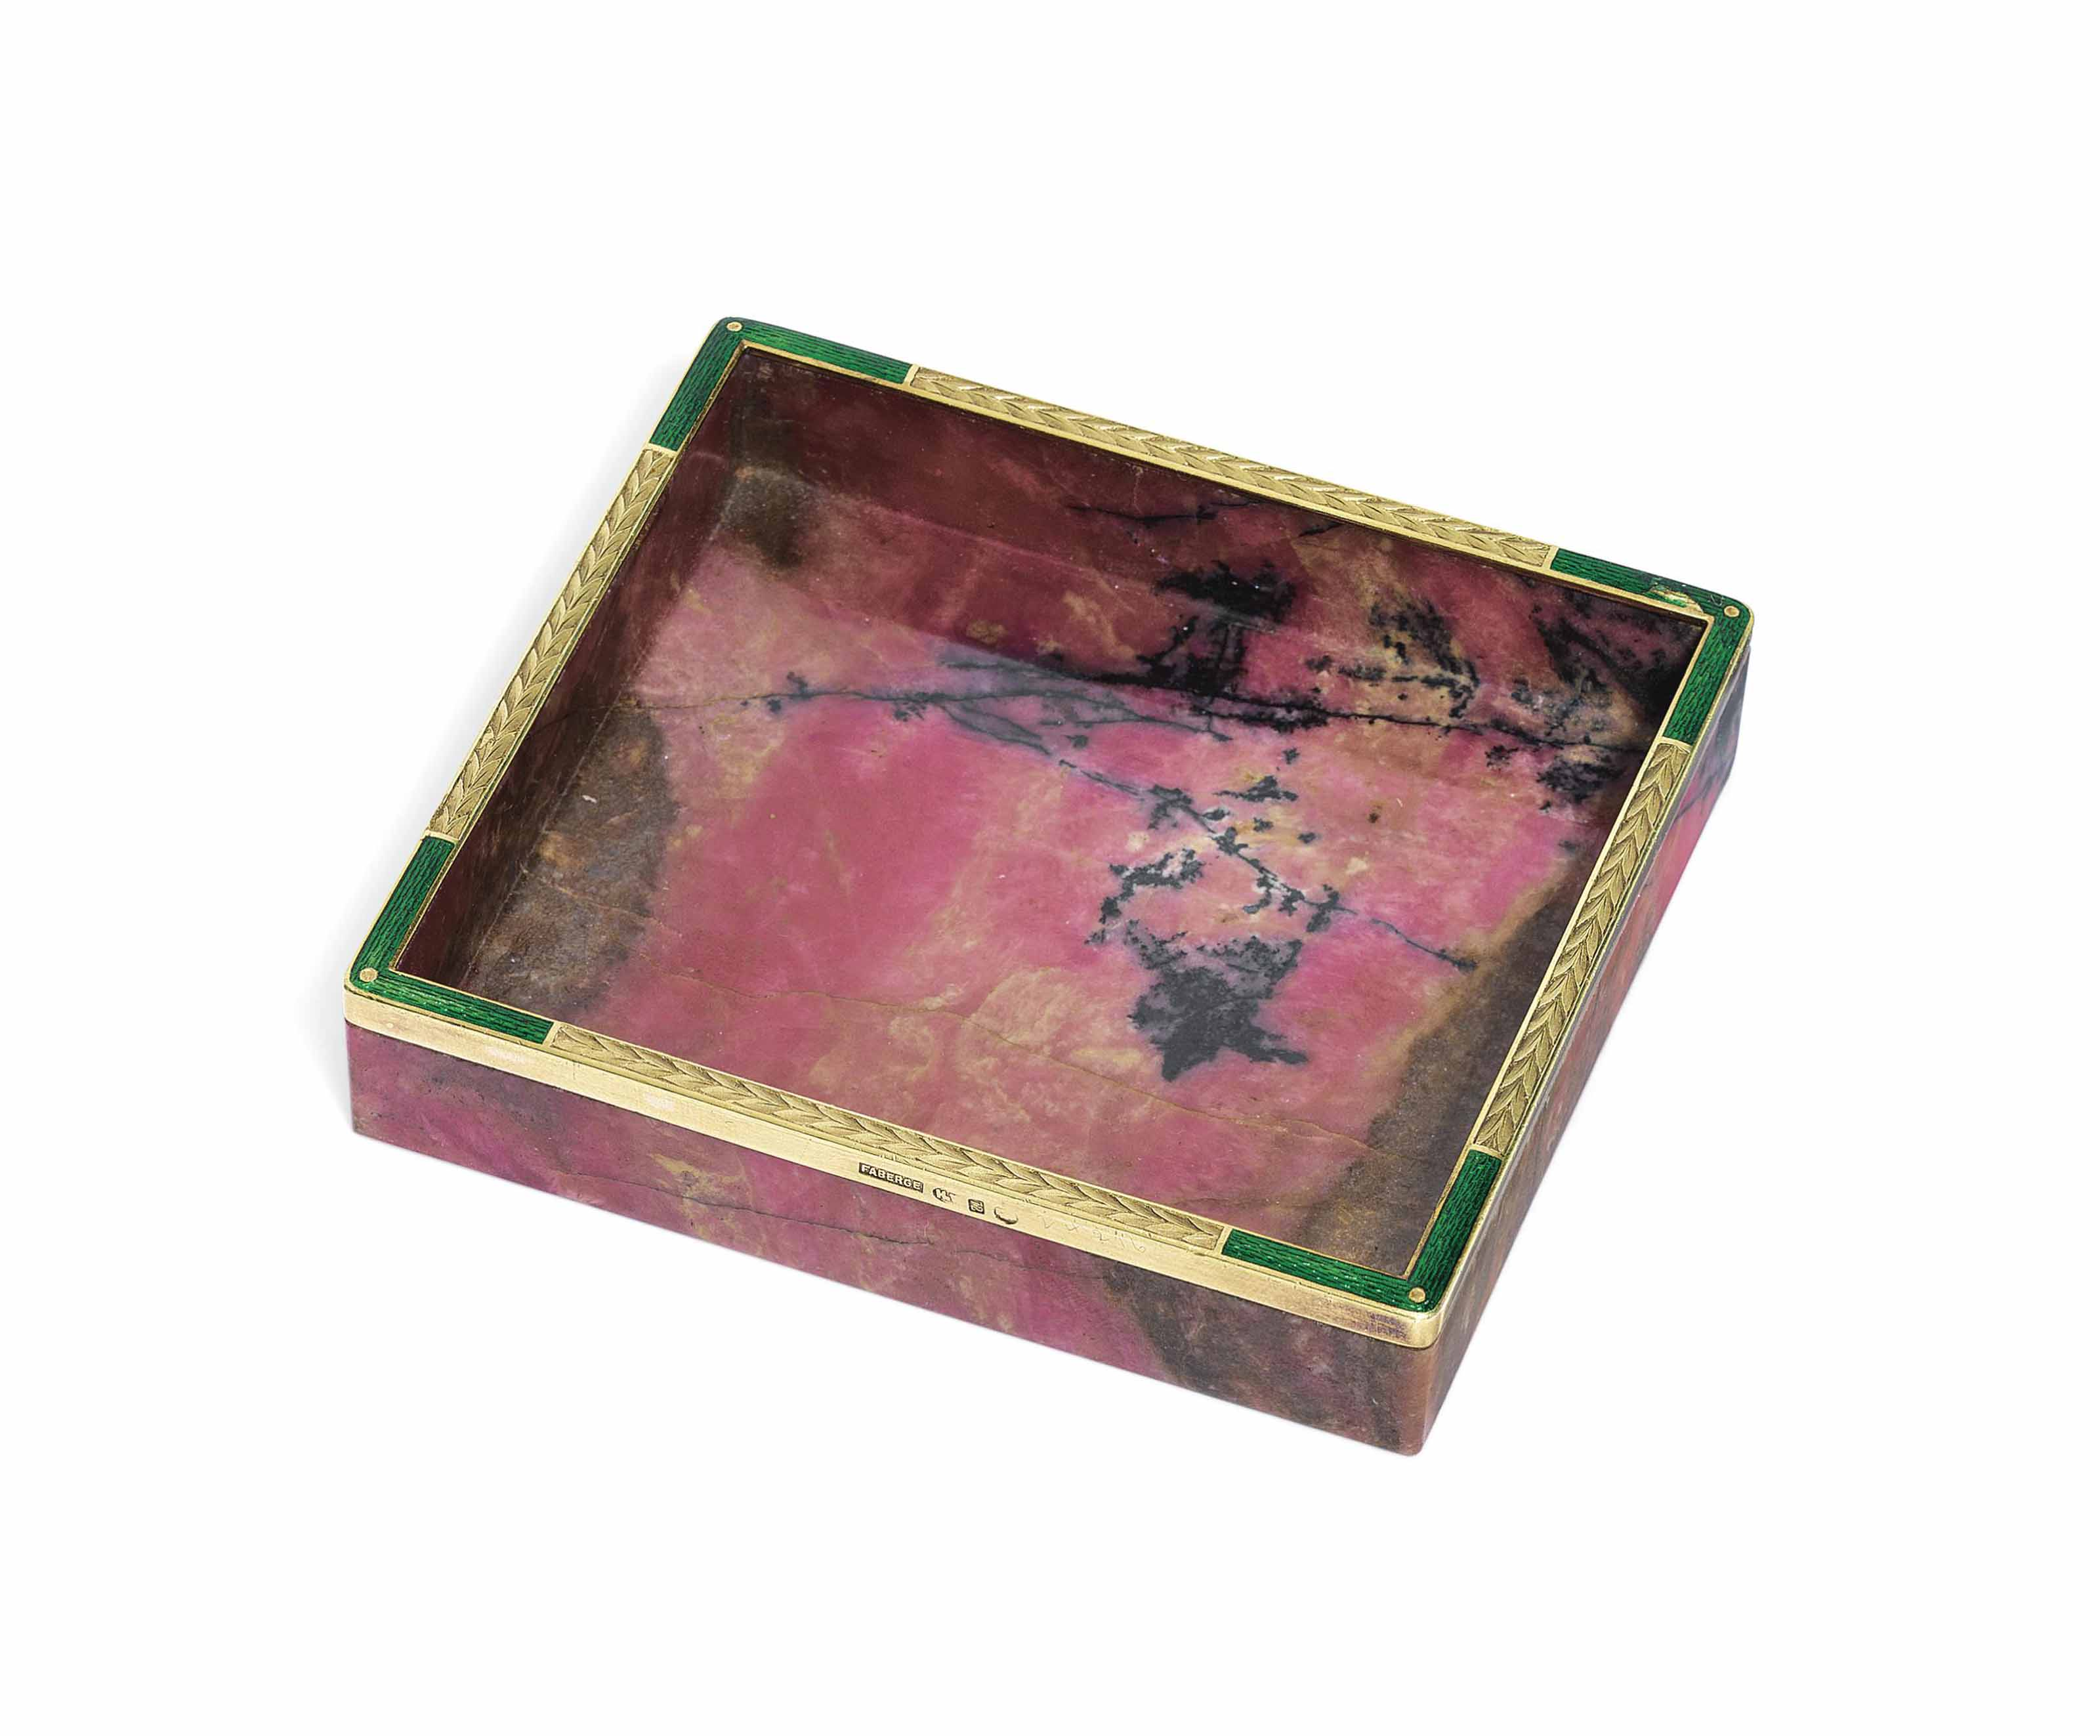 A GOLD-MOUNTED RHODONITE AND GUILLOCHÉ ENAMEL DISH